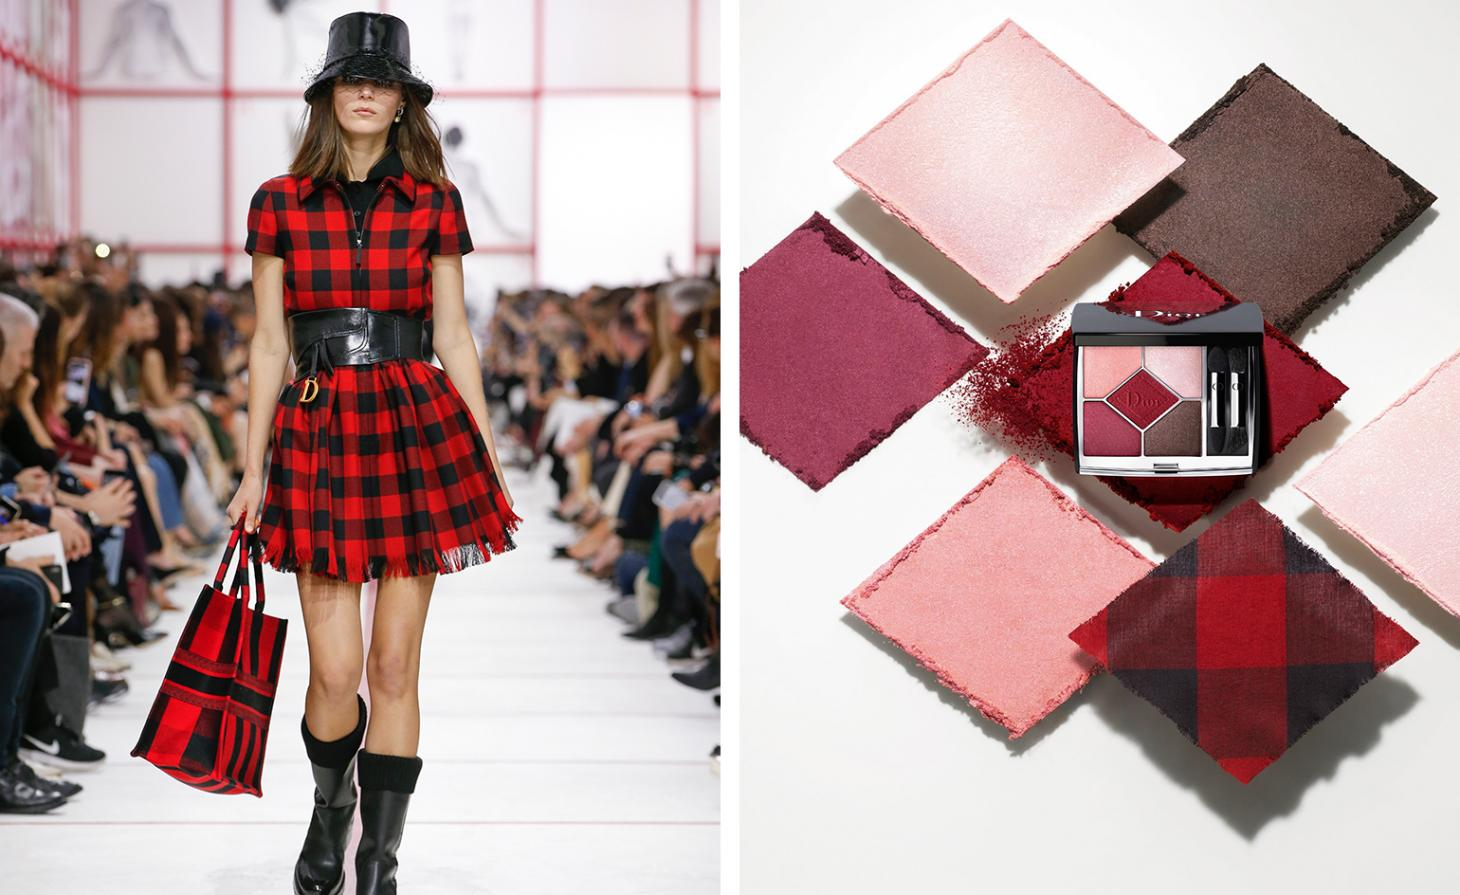 Dior 879 Rouge Trafalger Couleurs Couture Palettes next to Dior AW19 womenswear